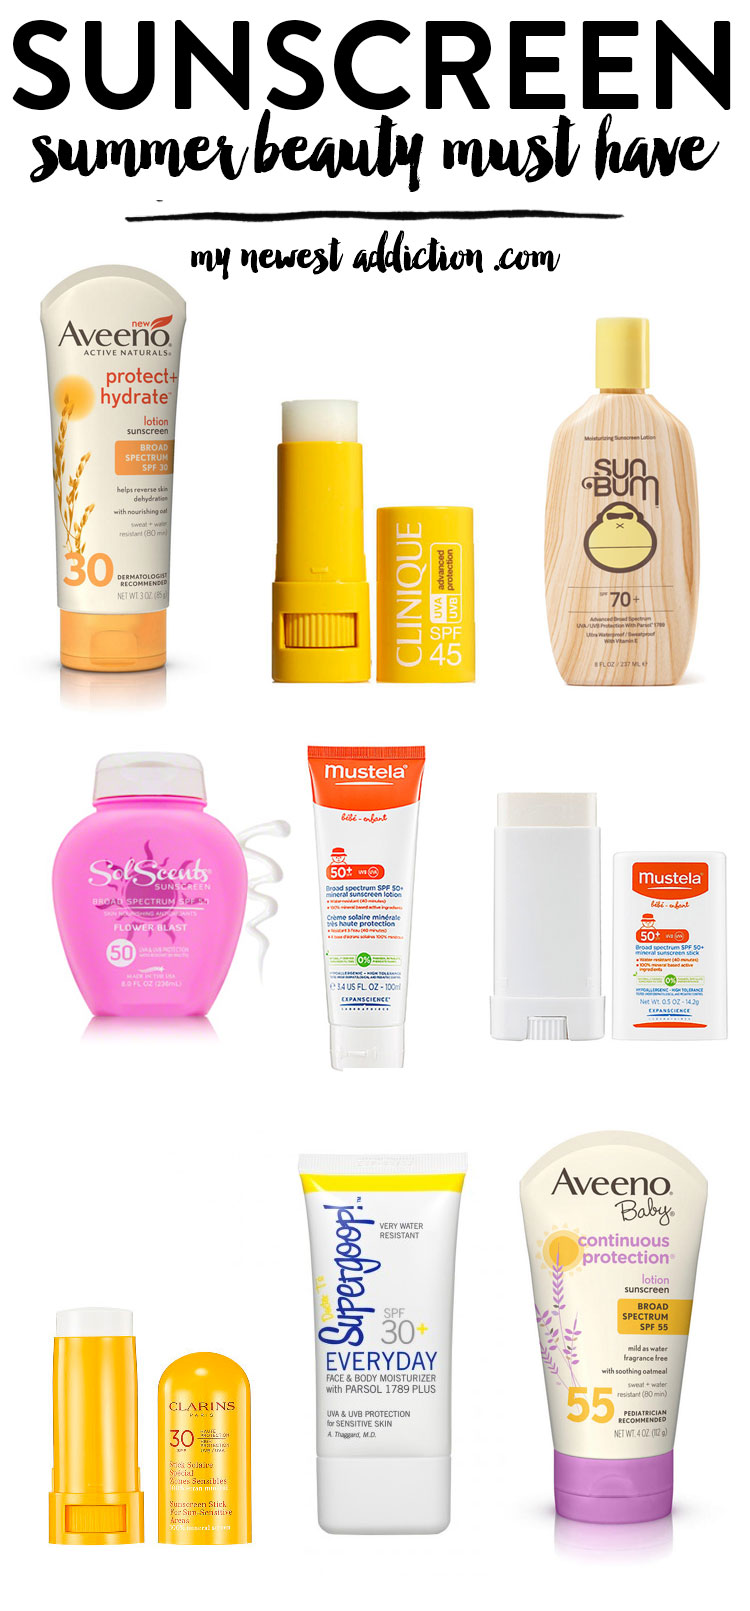 Sunscreen | Summer Beauty Must Have